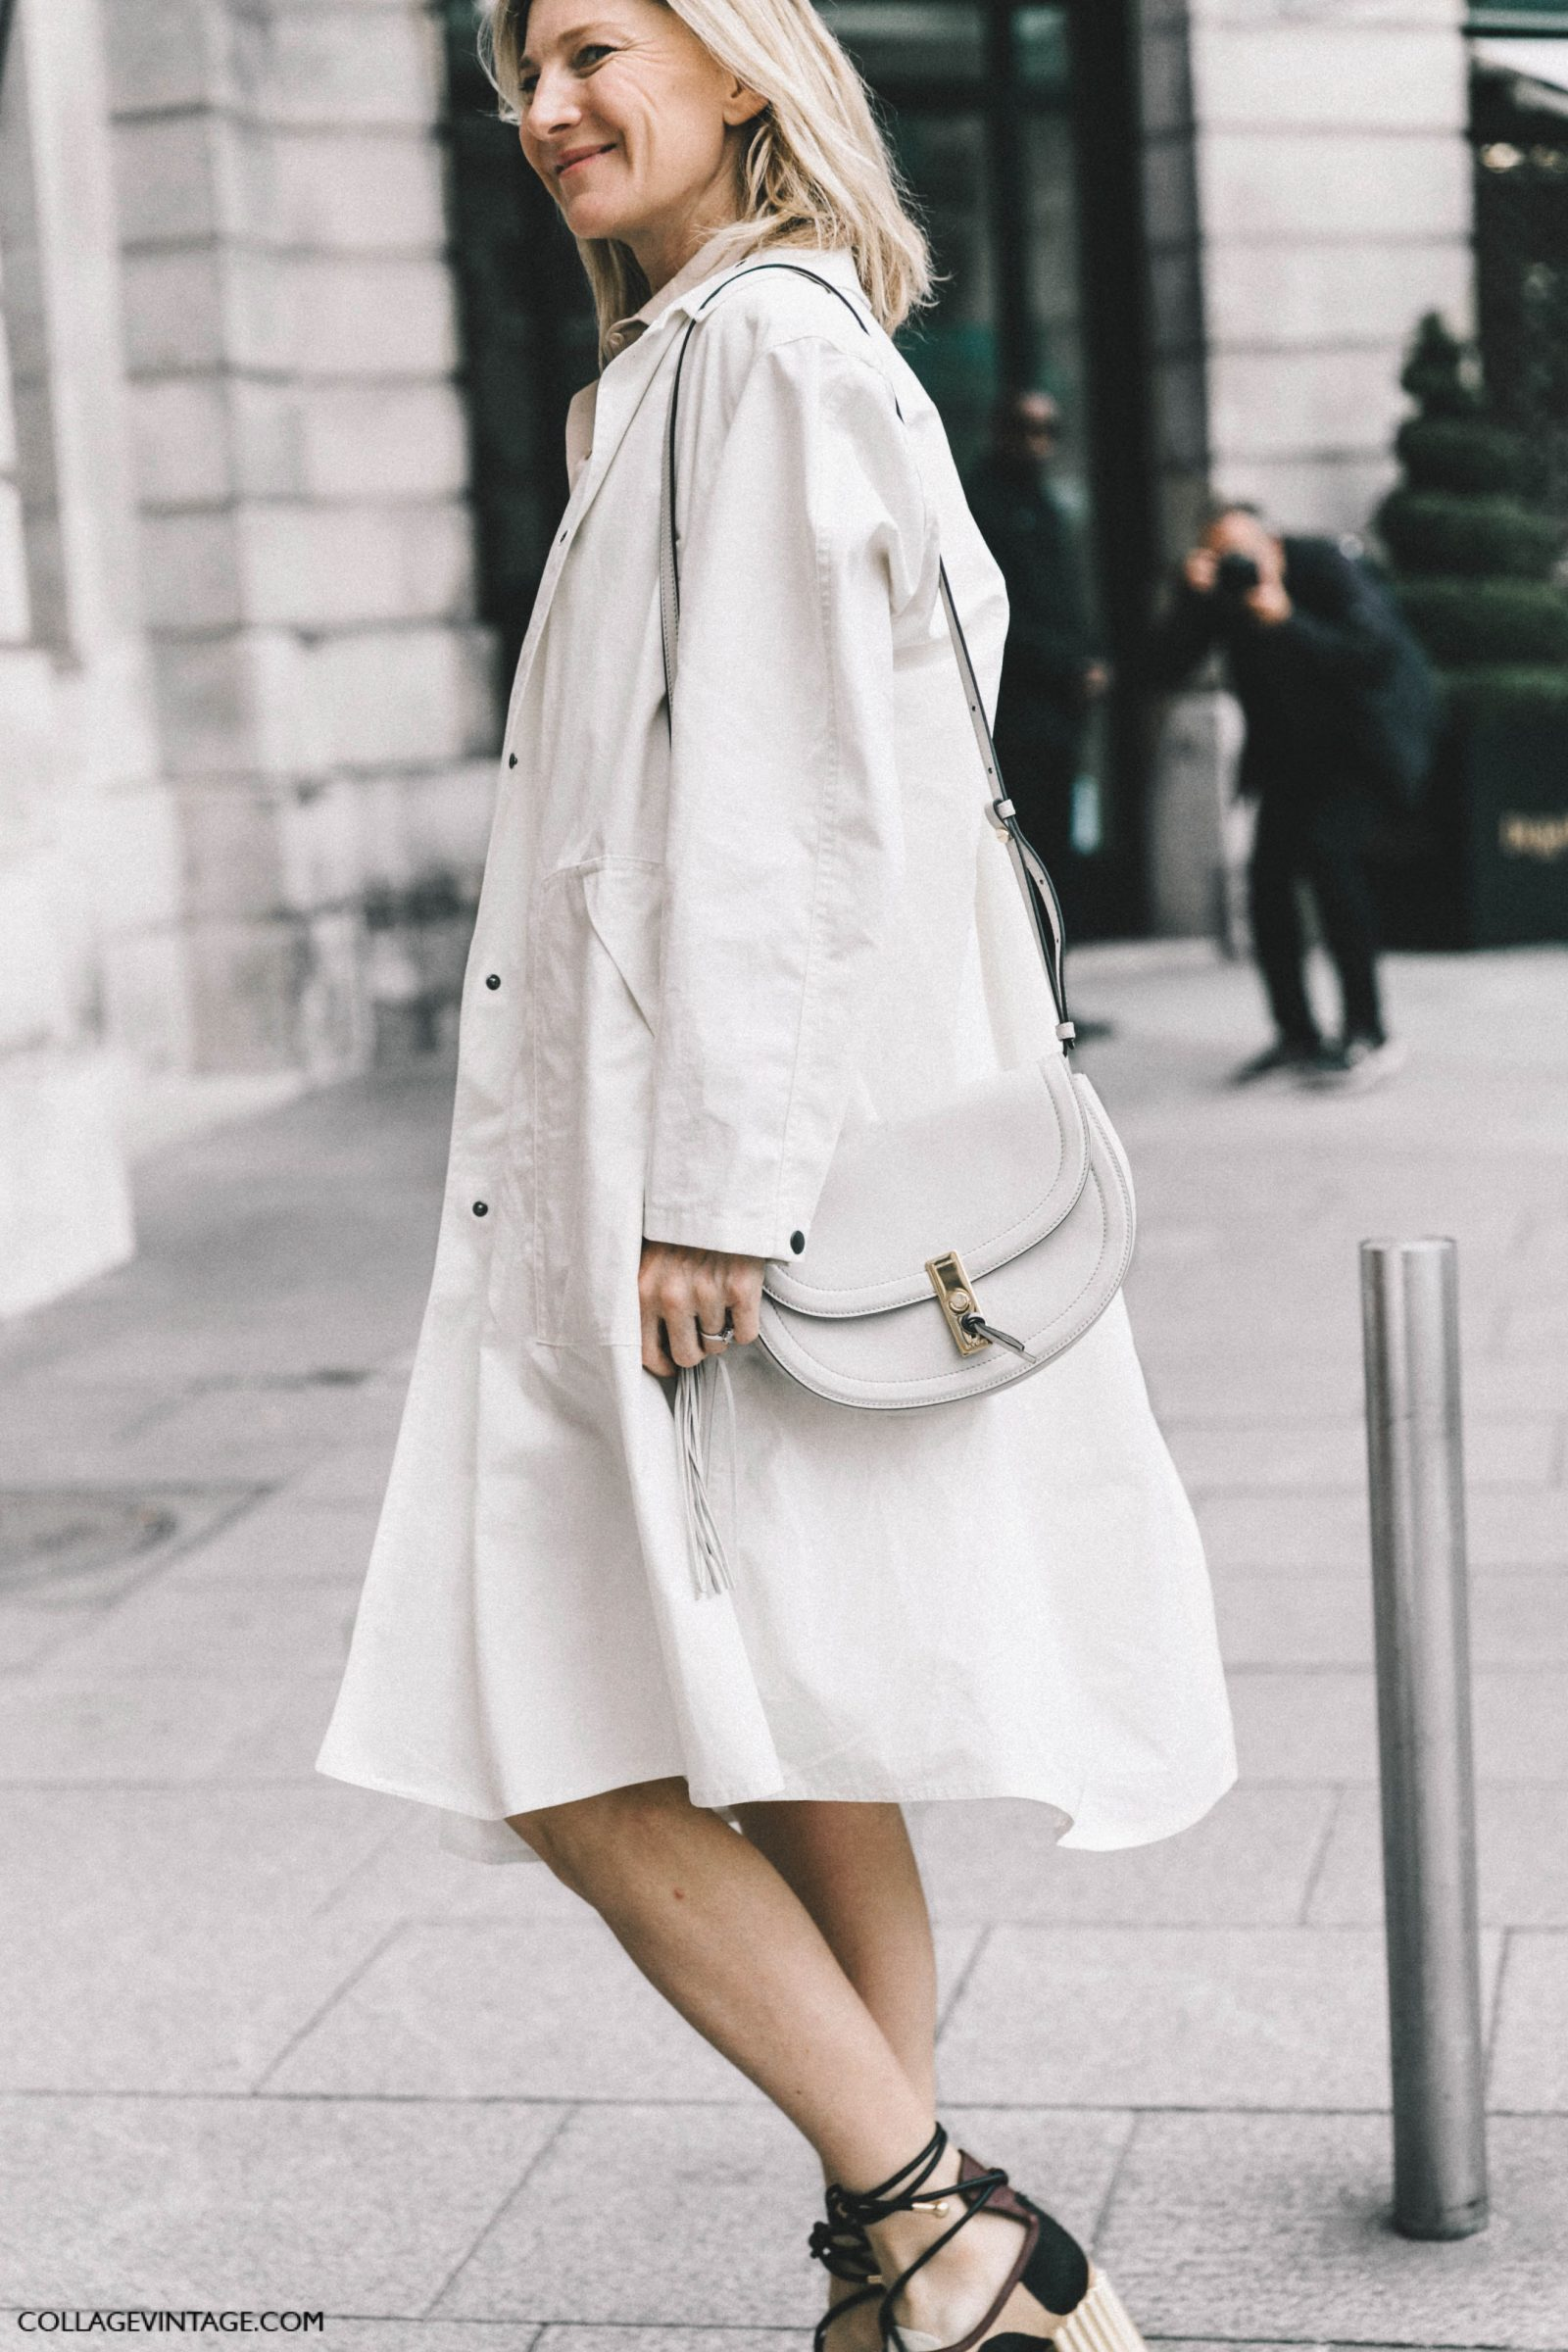 Paris_Couture_Fashion_Week-Collage_Vintage-Street_Style-3